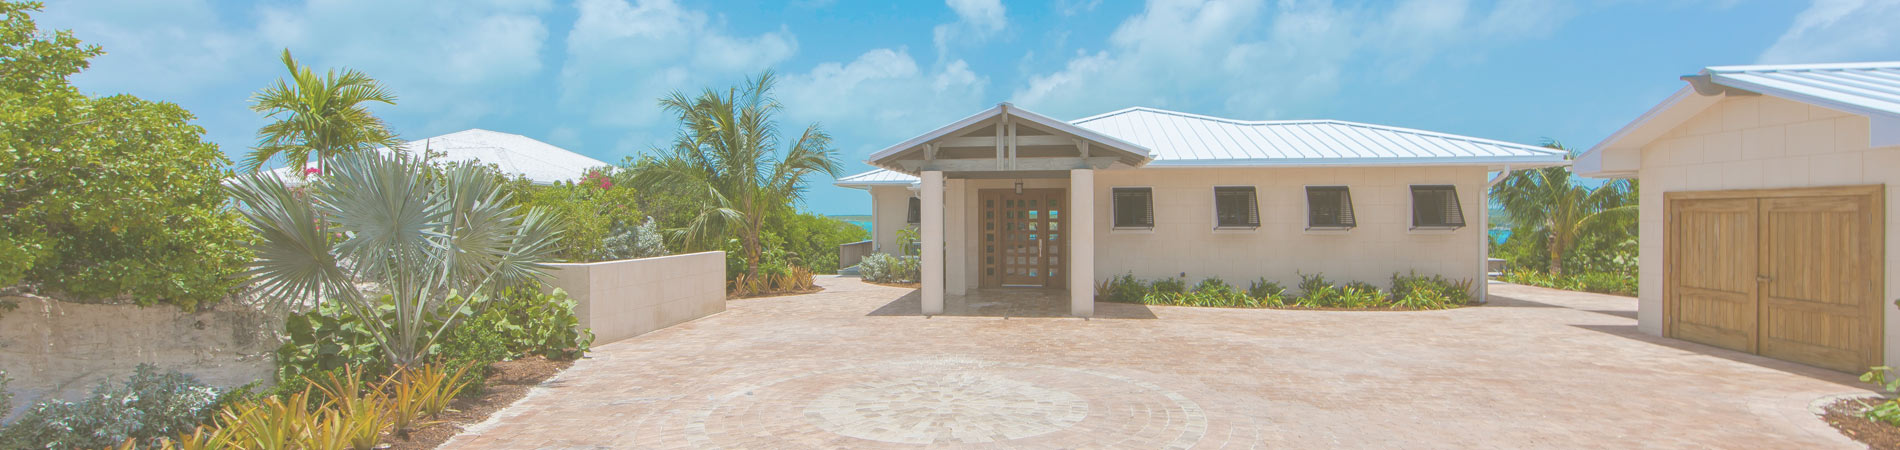 Staniel Cay Beach House Rental